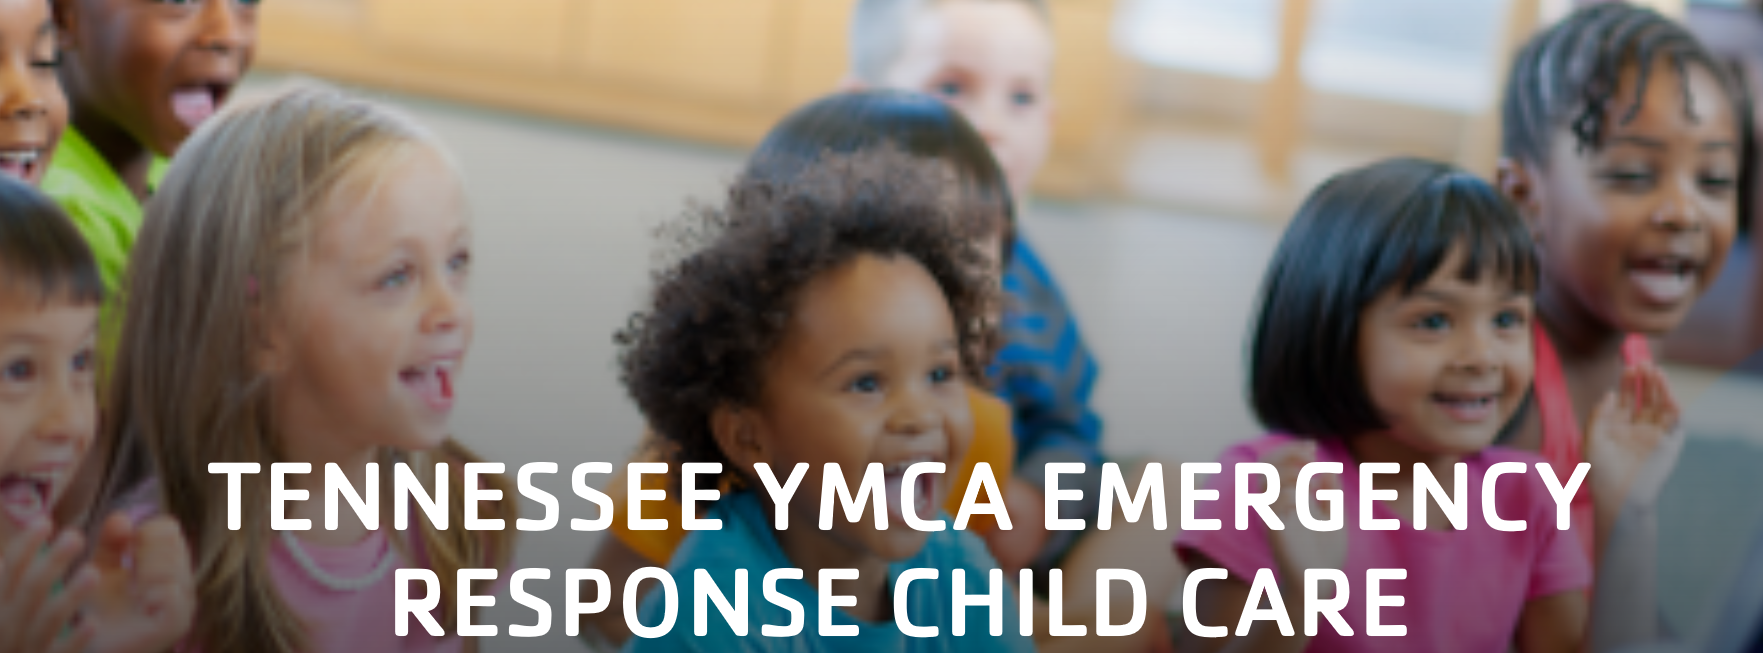 The COVID-19 Essential Employee Child Care Payment Assistance program and partnership with the YMCA and the Boys & Girls Clubs in Tennessee follows other important moves TDHS has made to support child care needs during the pandemic emergency.